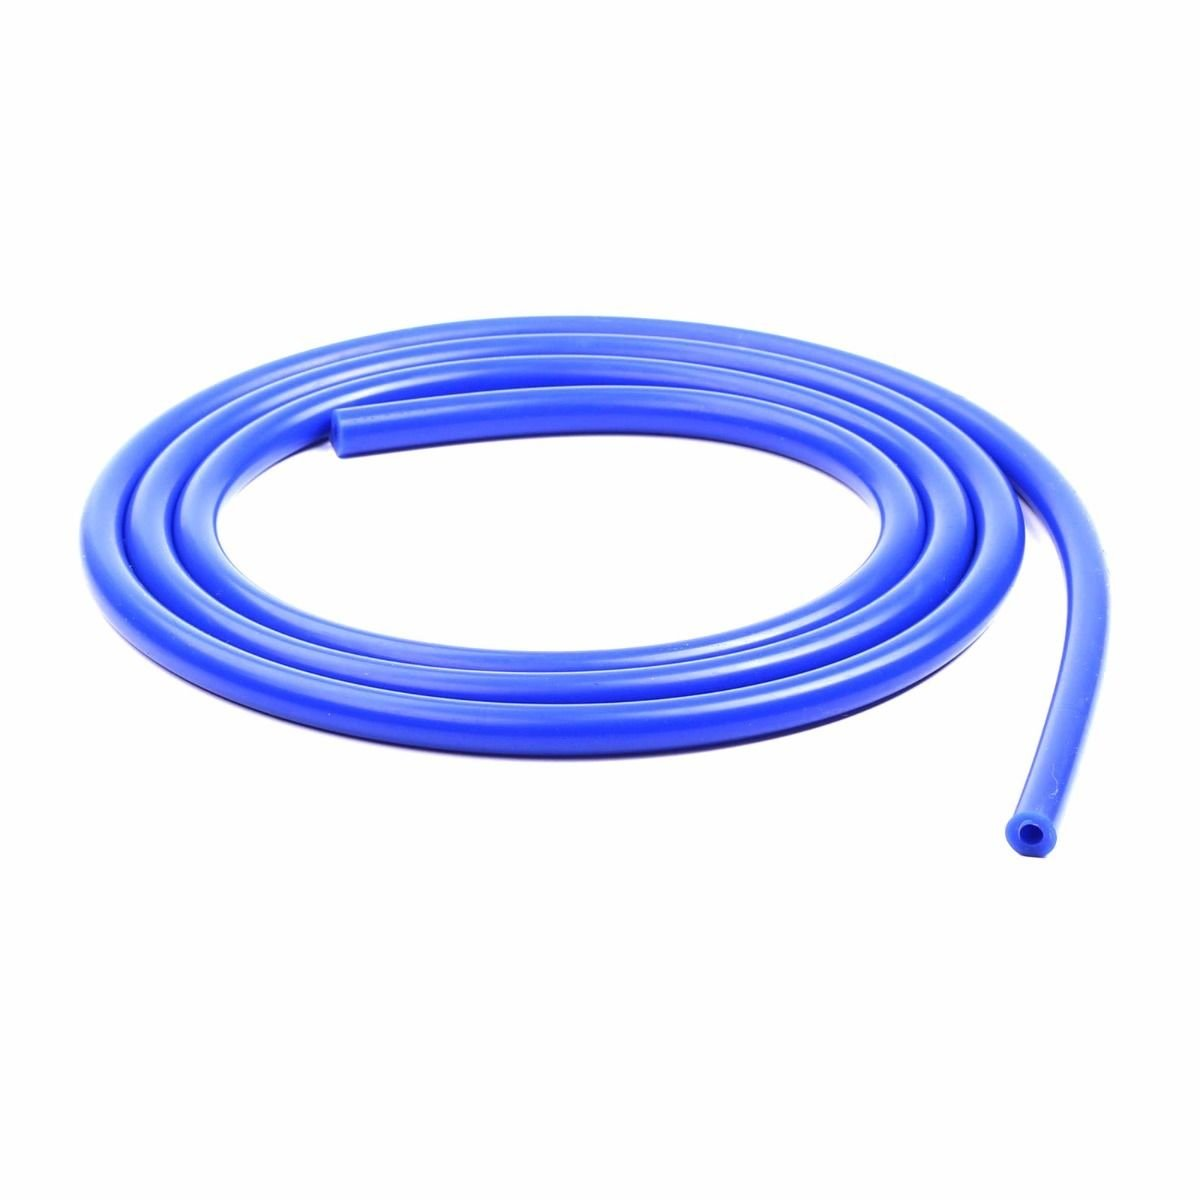 15/32' 12mm Silicone Vacuum Hose Tube High Performance 1 Foot Blue yjracing